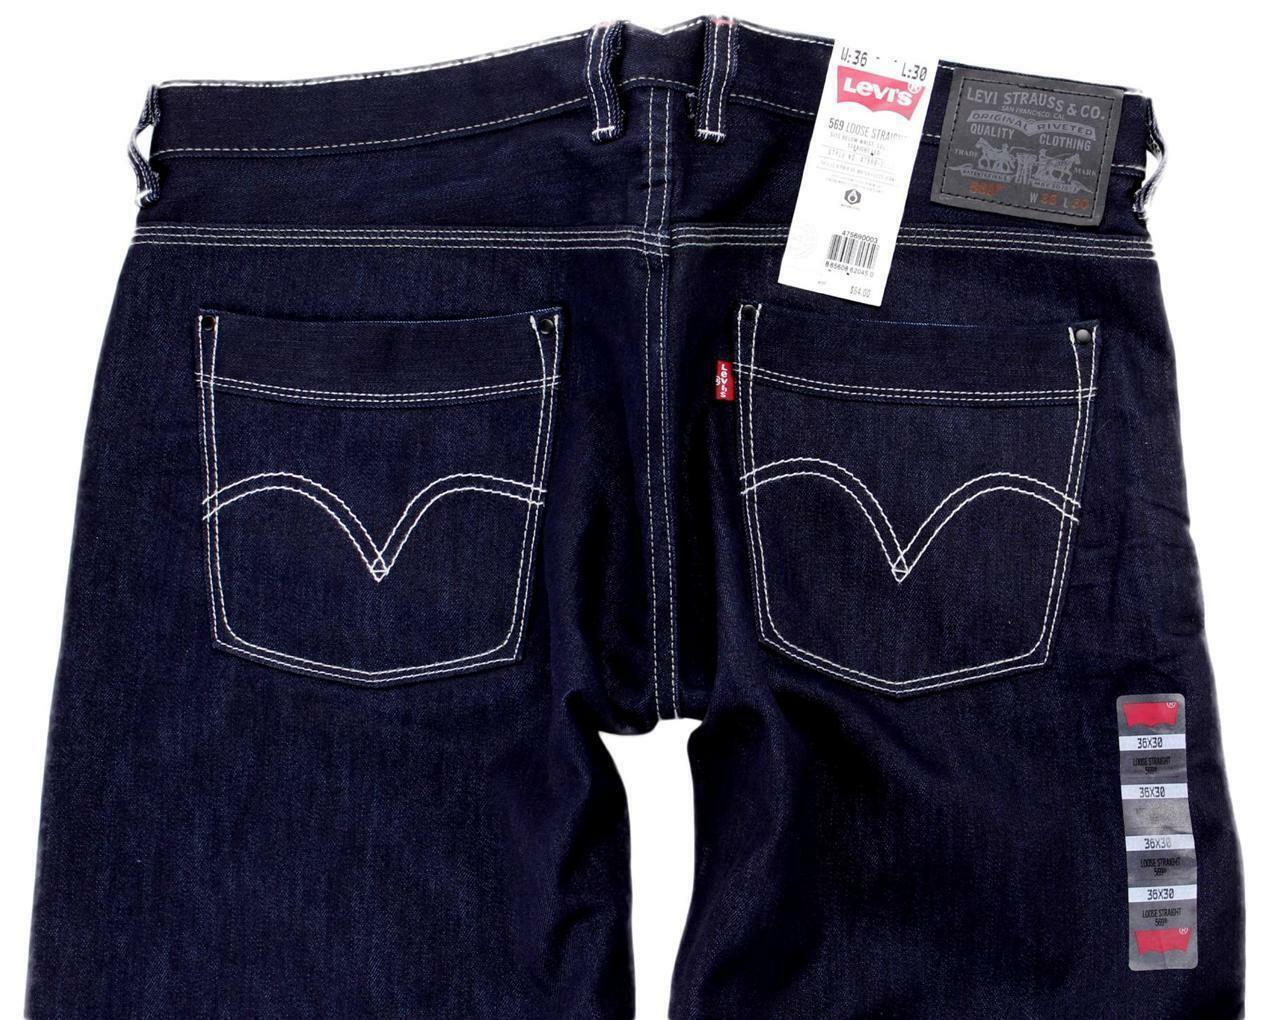 Levi's Strauss 569 Men's Original Loose Fit Straight Leg Jeans 569-0003